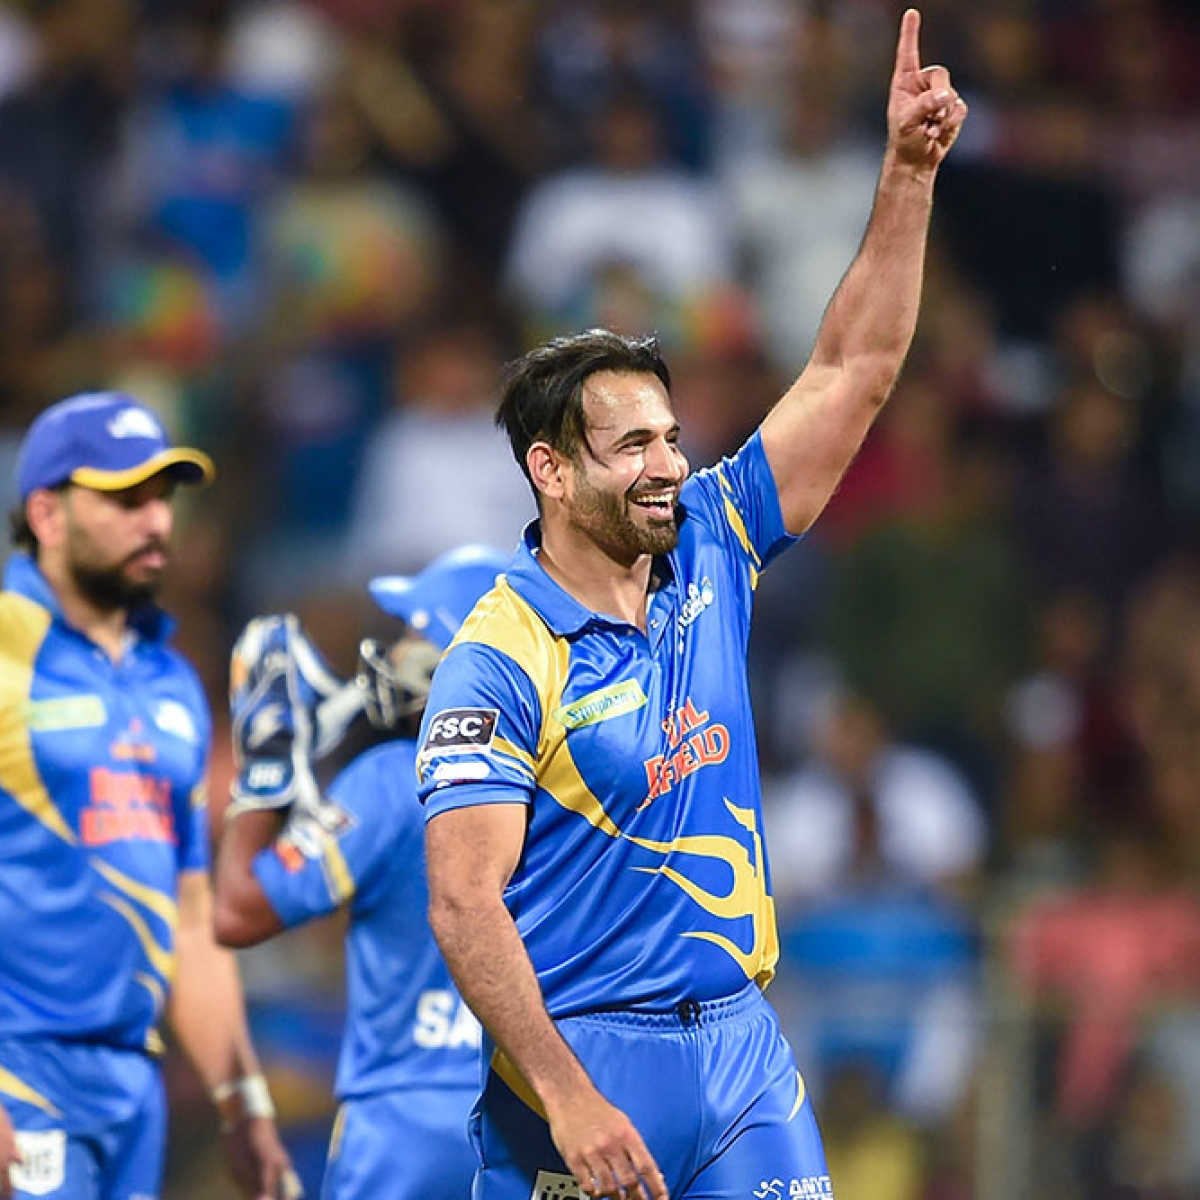 Road Safety World Series: Irfan Pathan guides India Legends to victory over Sri Lanka Legends